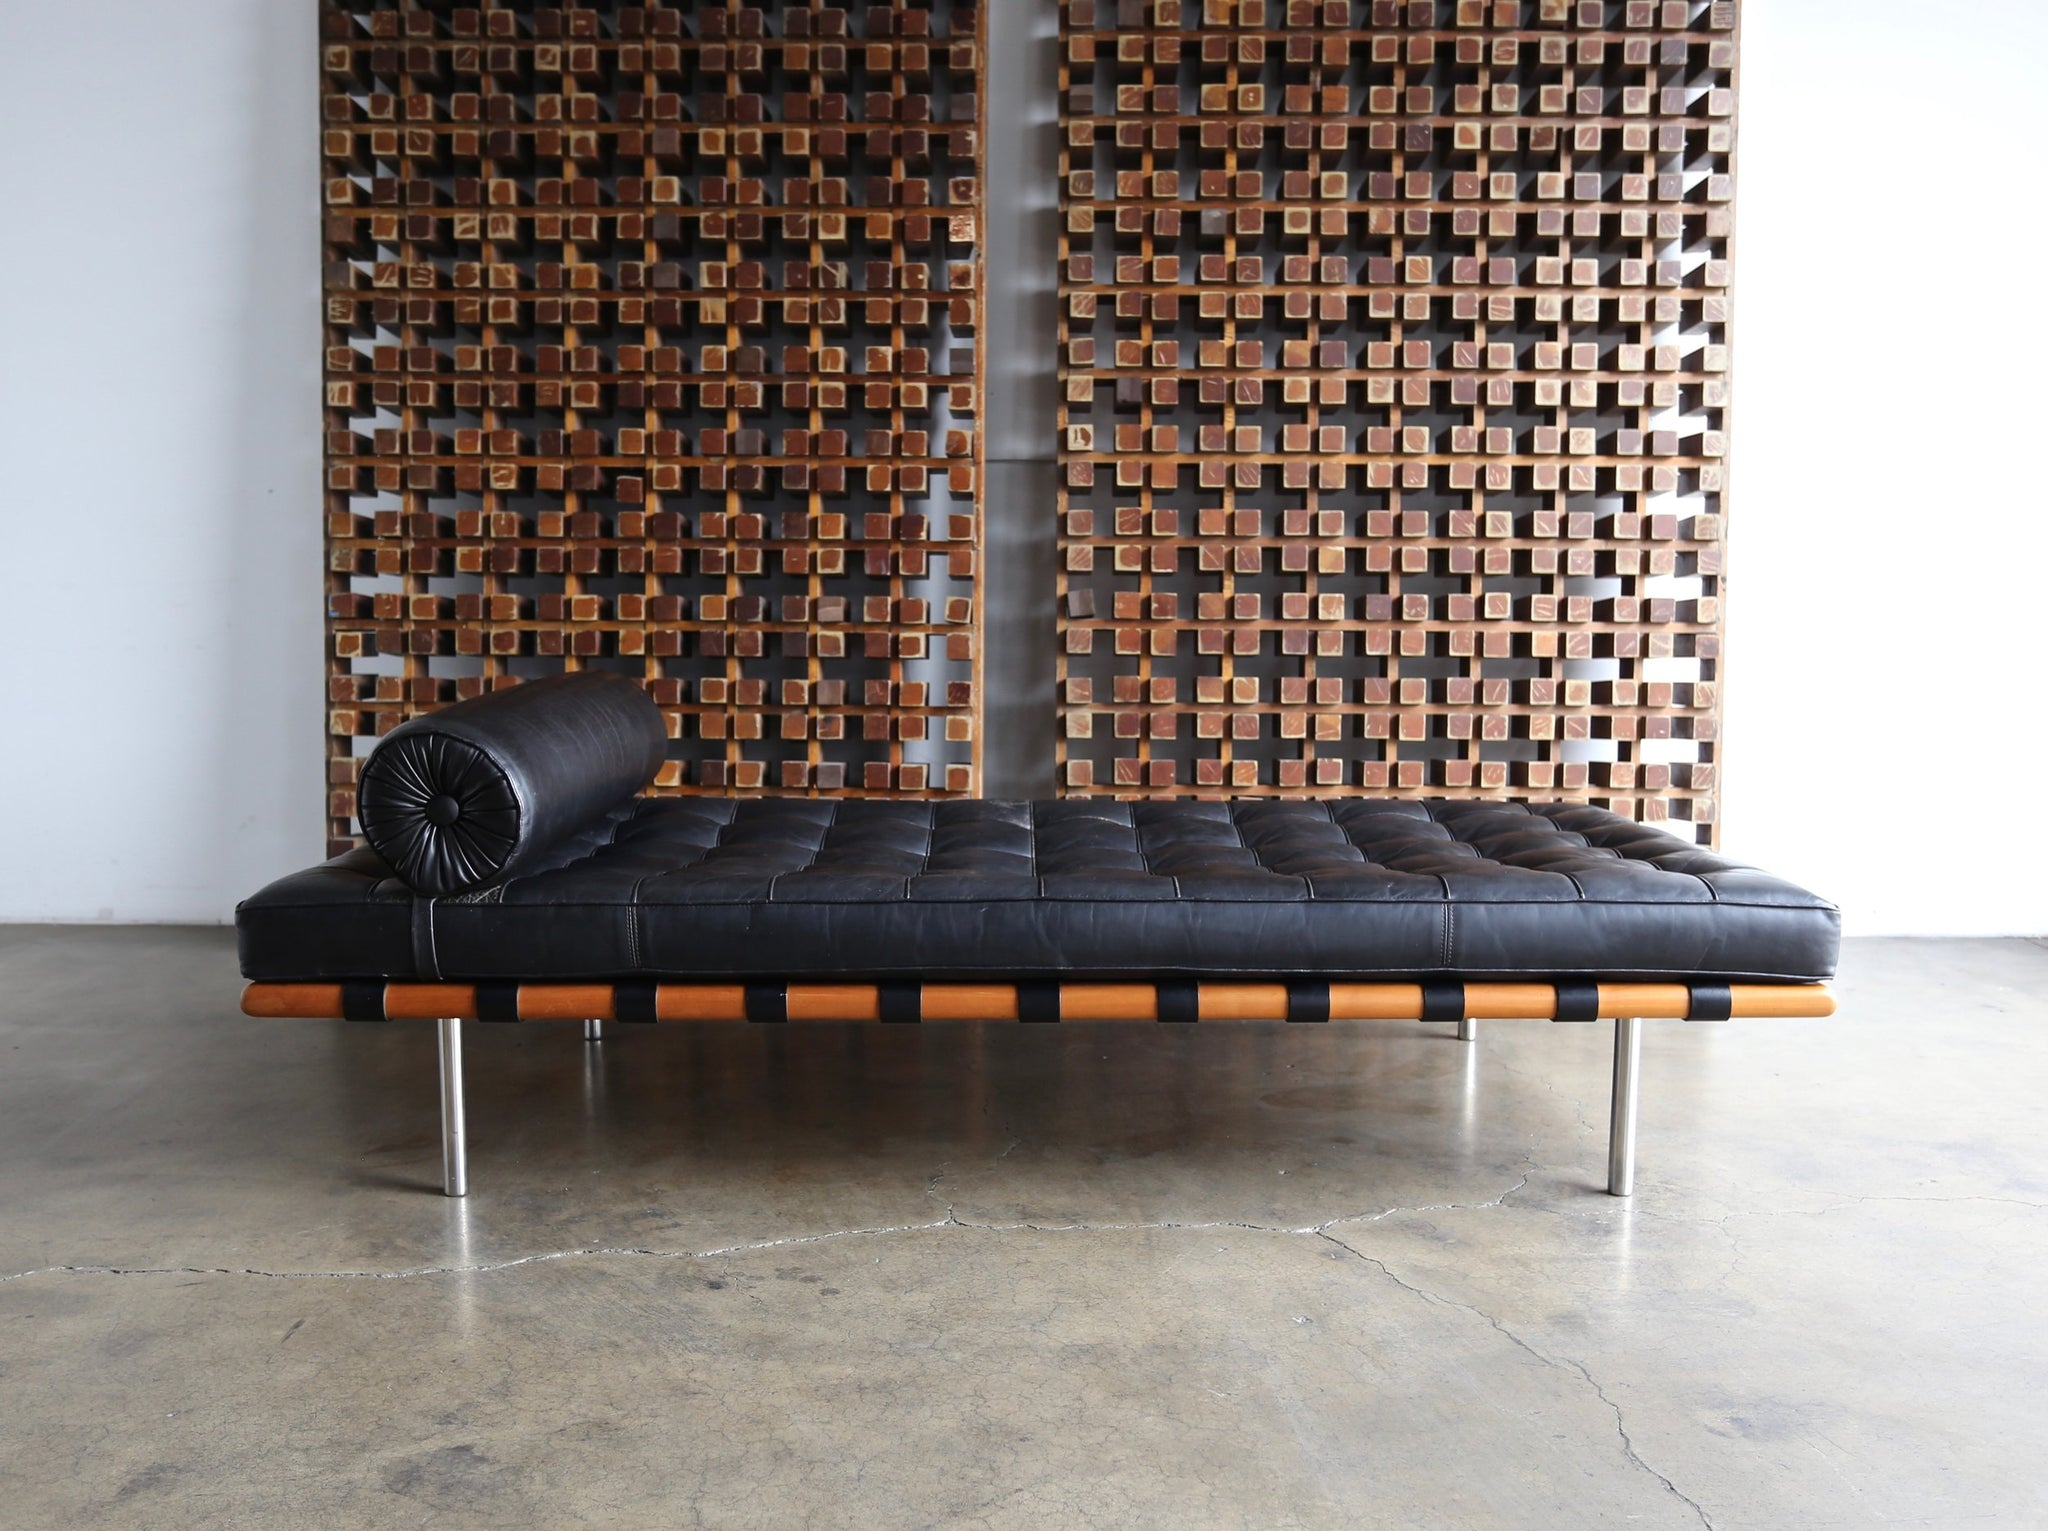 = SOLD = Mies van der Rohe Leather & Walnut Daybed for Knoll, 1983